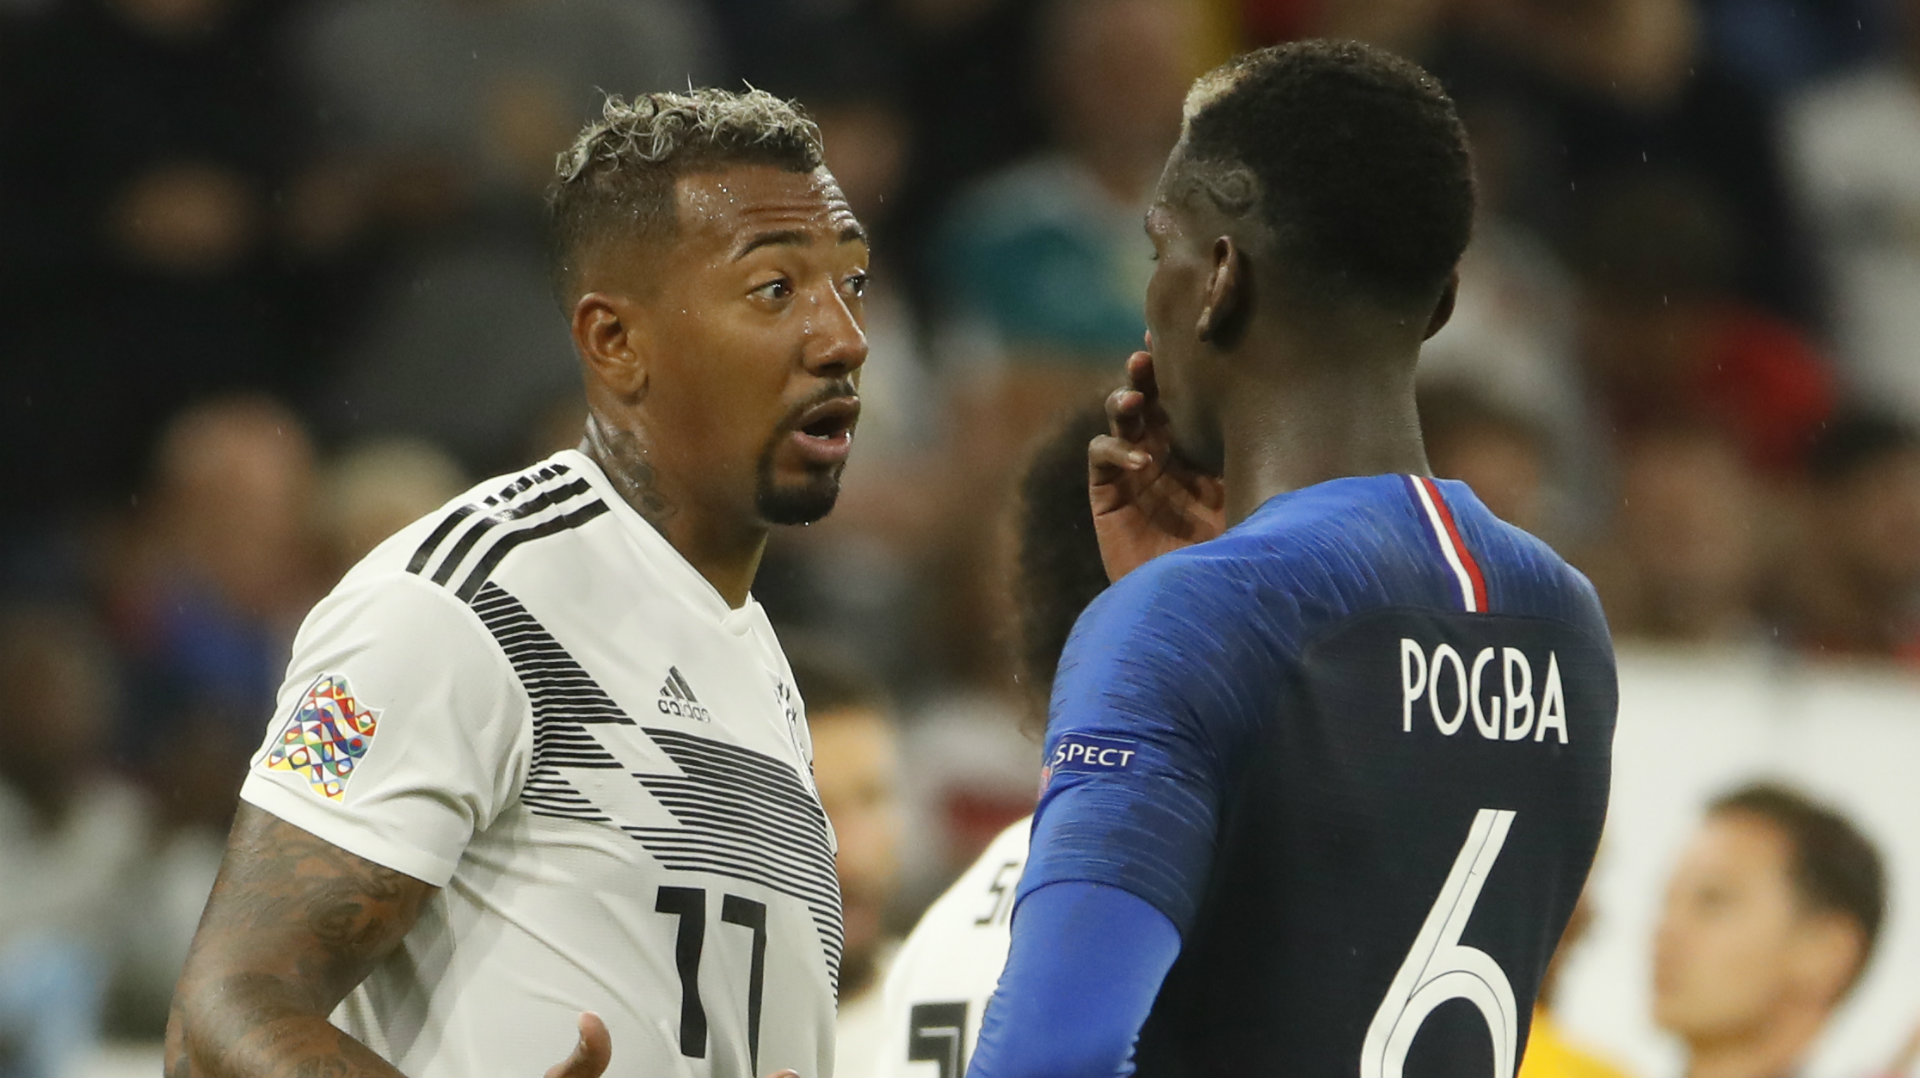 Gary Neville: 'Manchester United fine if Paul Pogba leaves'